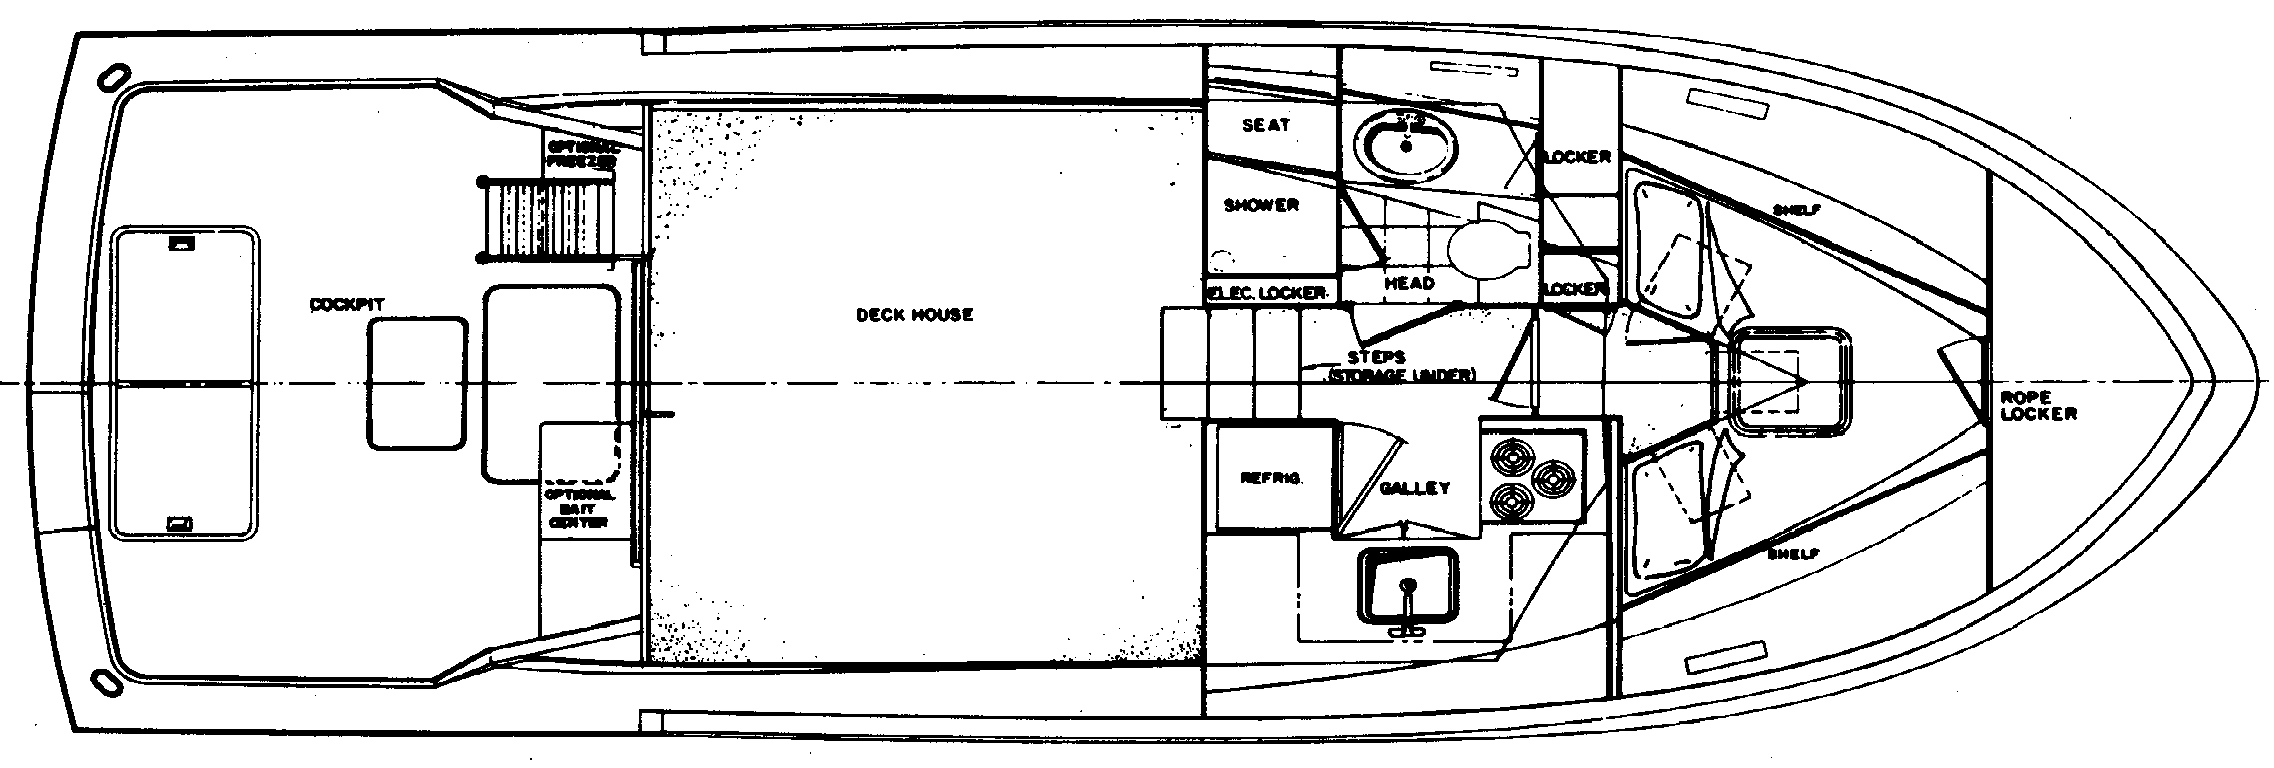 36 Convertible Floor Plan 2